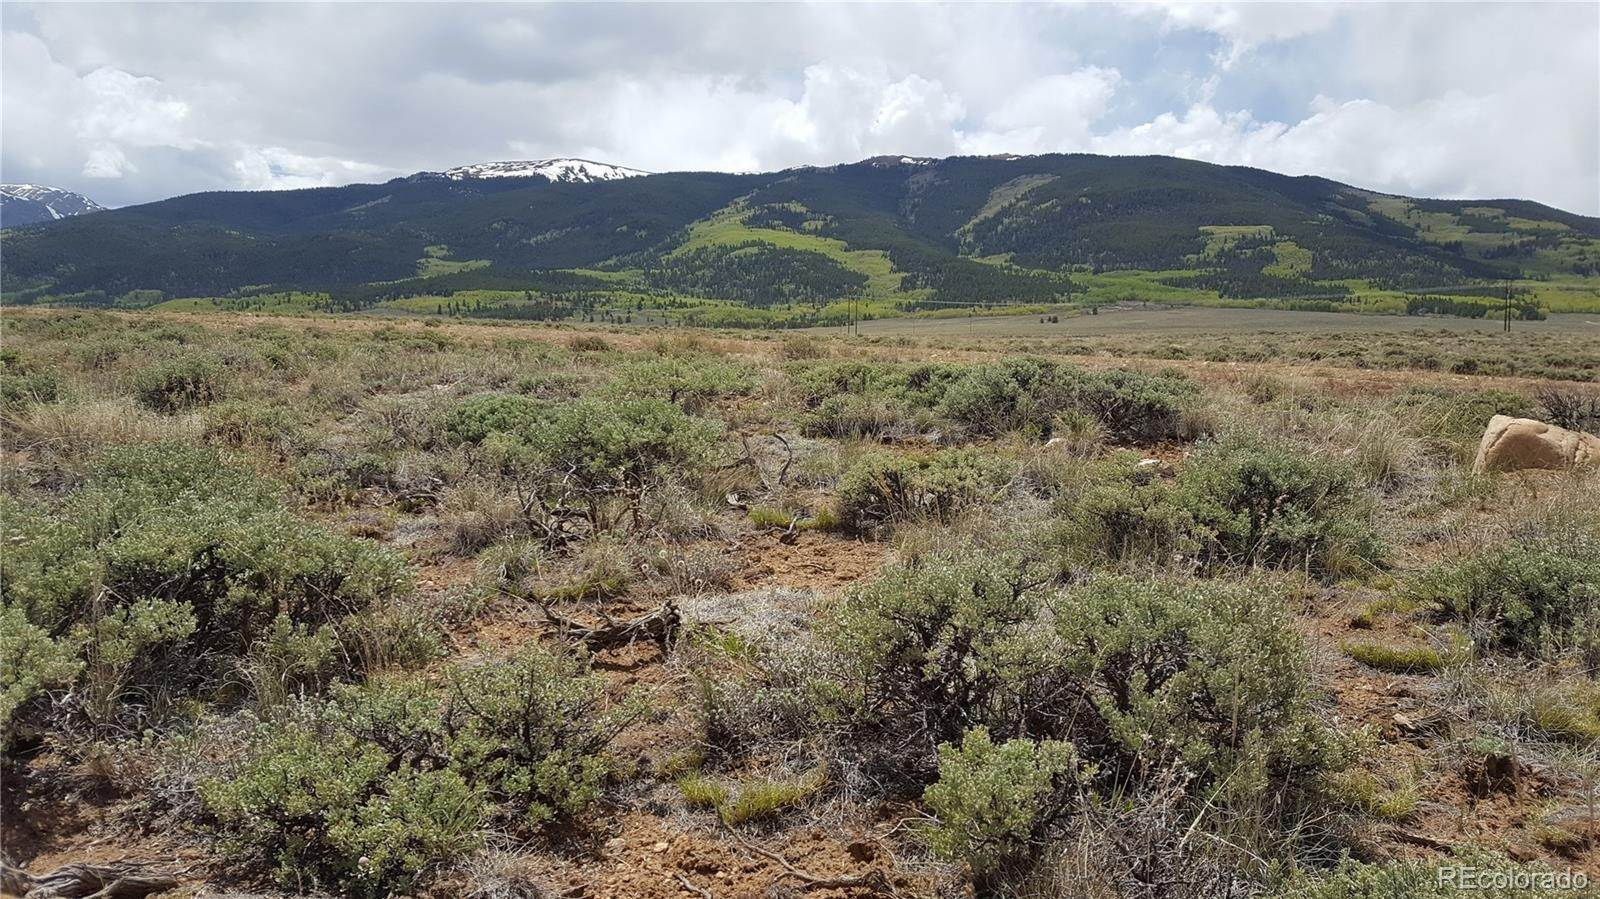 Land for Sale at Prcl 13 Trct 4 Twin Lakes, Colorado 81251 United States